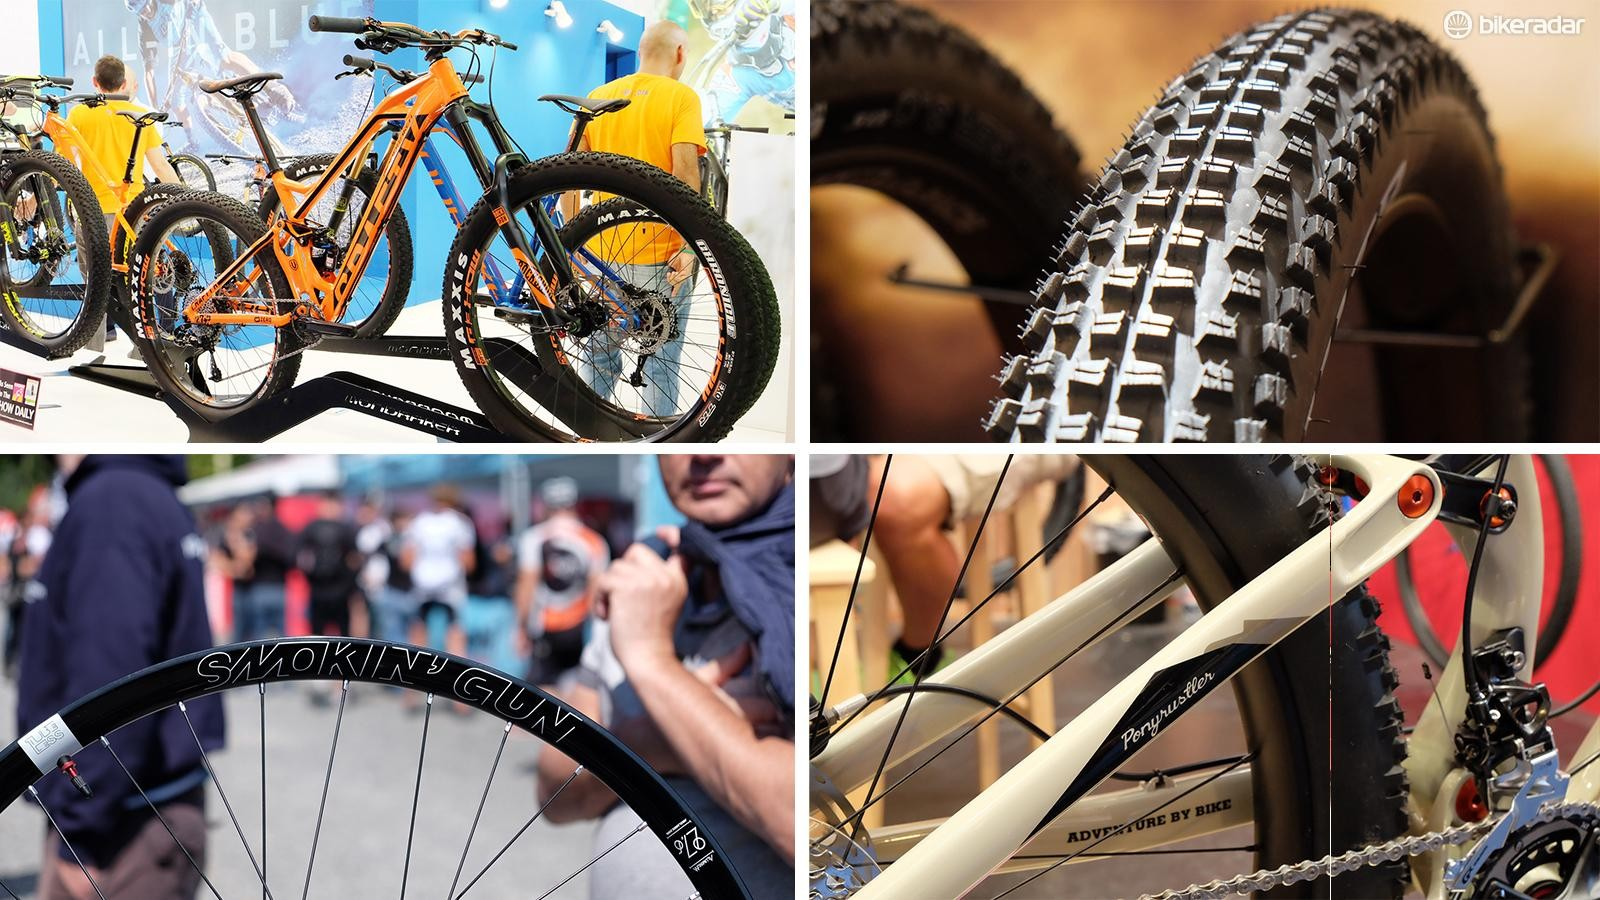 Plus-sized bikes and components steamrolled this year's Eurobike tradeshow